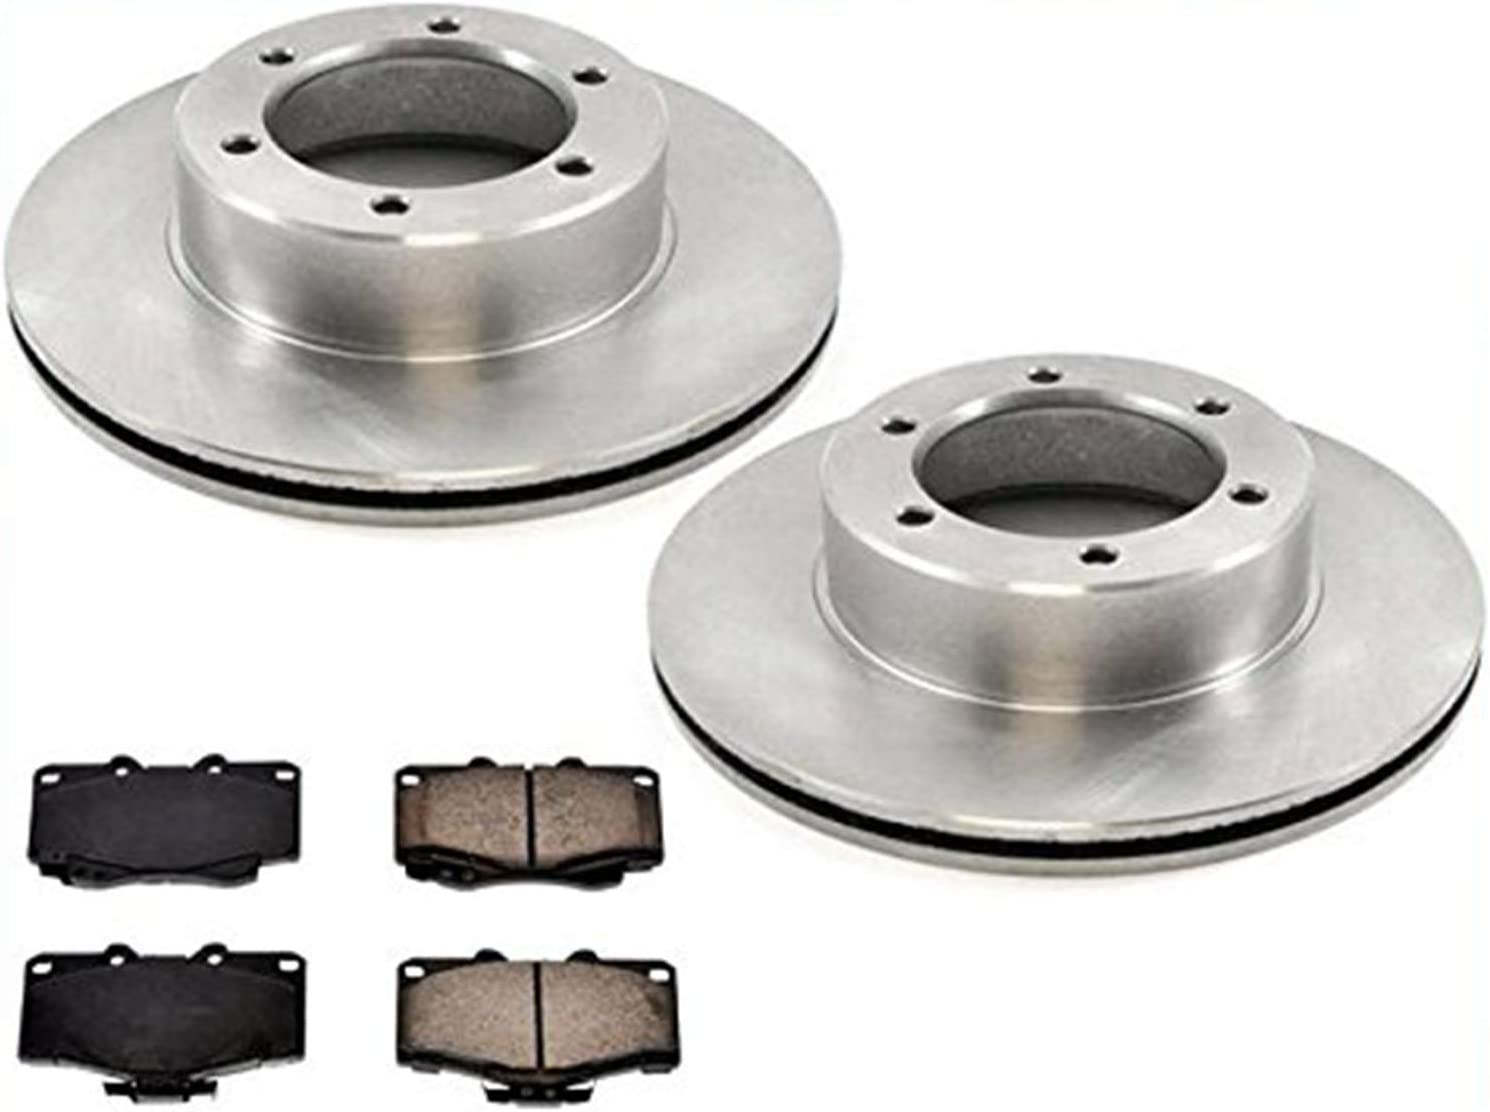 Brand New Front Rotors /& Brake Pads for Toyota Pickup 89-95 4 Wheel Drive 4x4